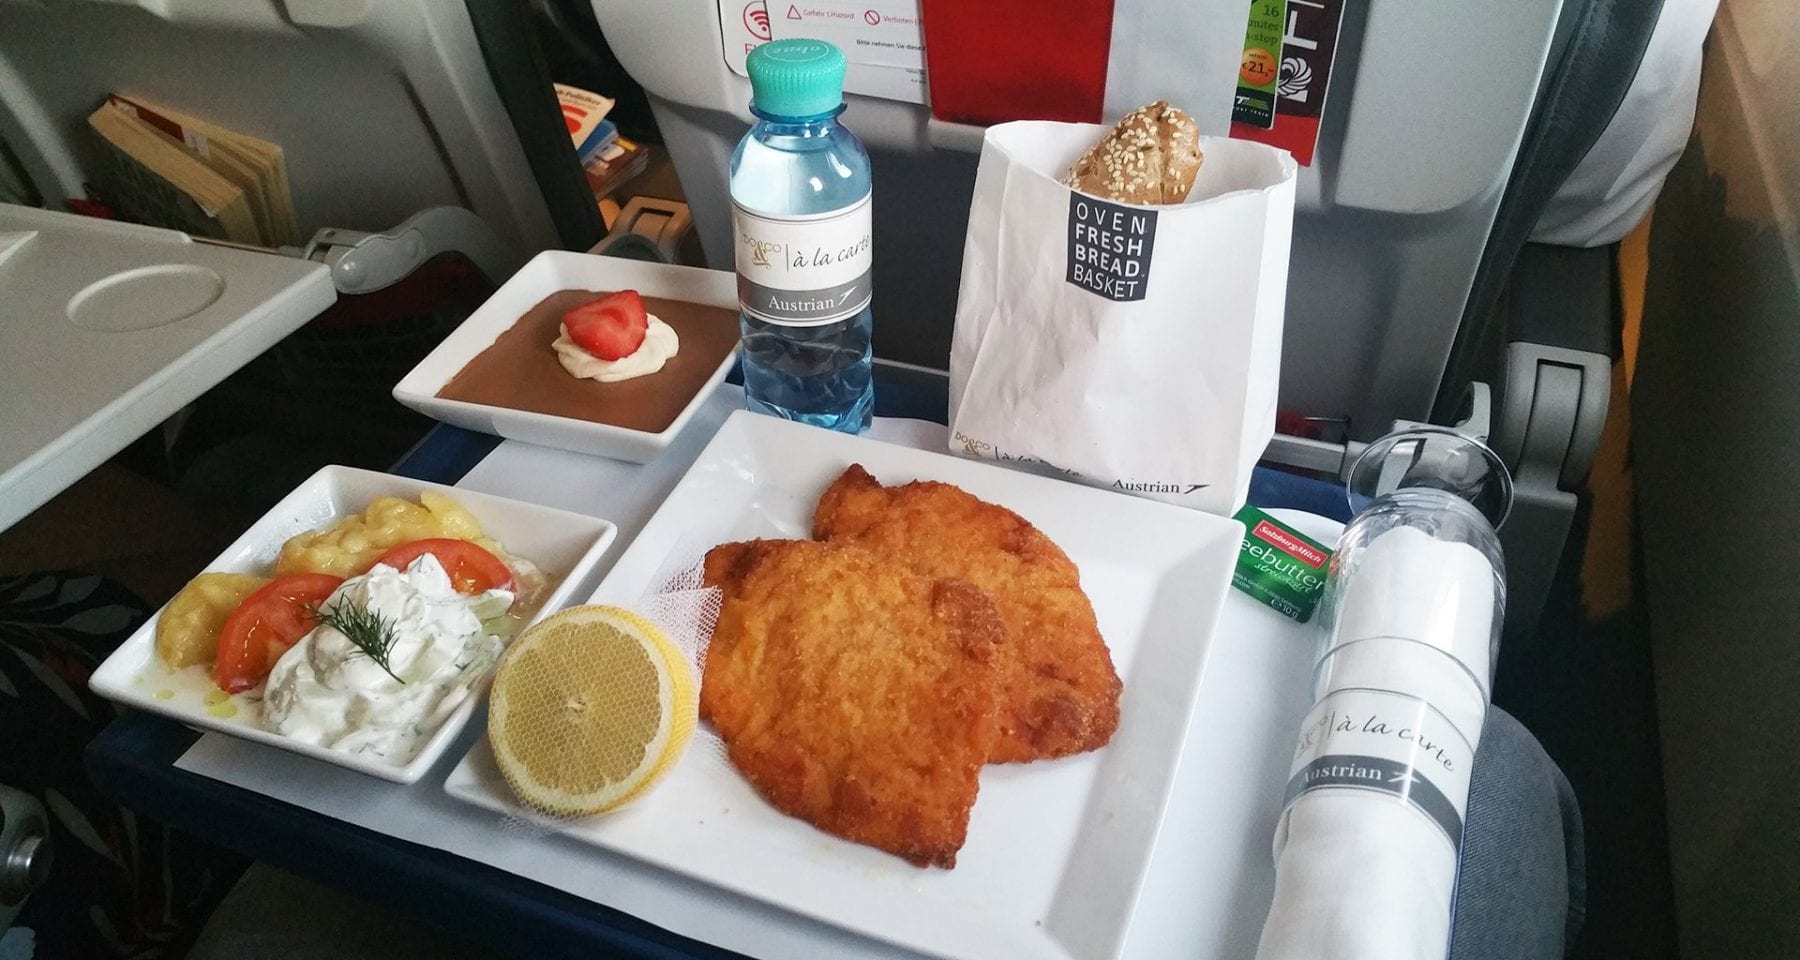 Austrian airlines schnitzel meal economy class upgrade meal by Do&Co